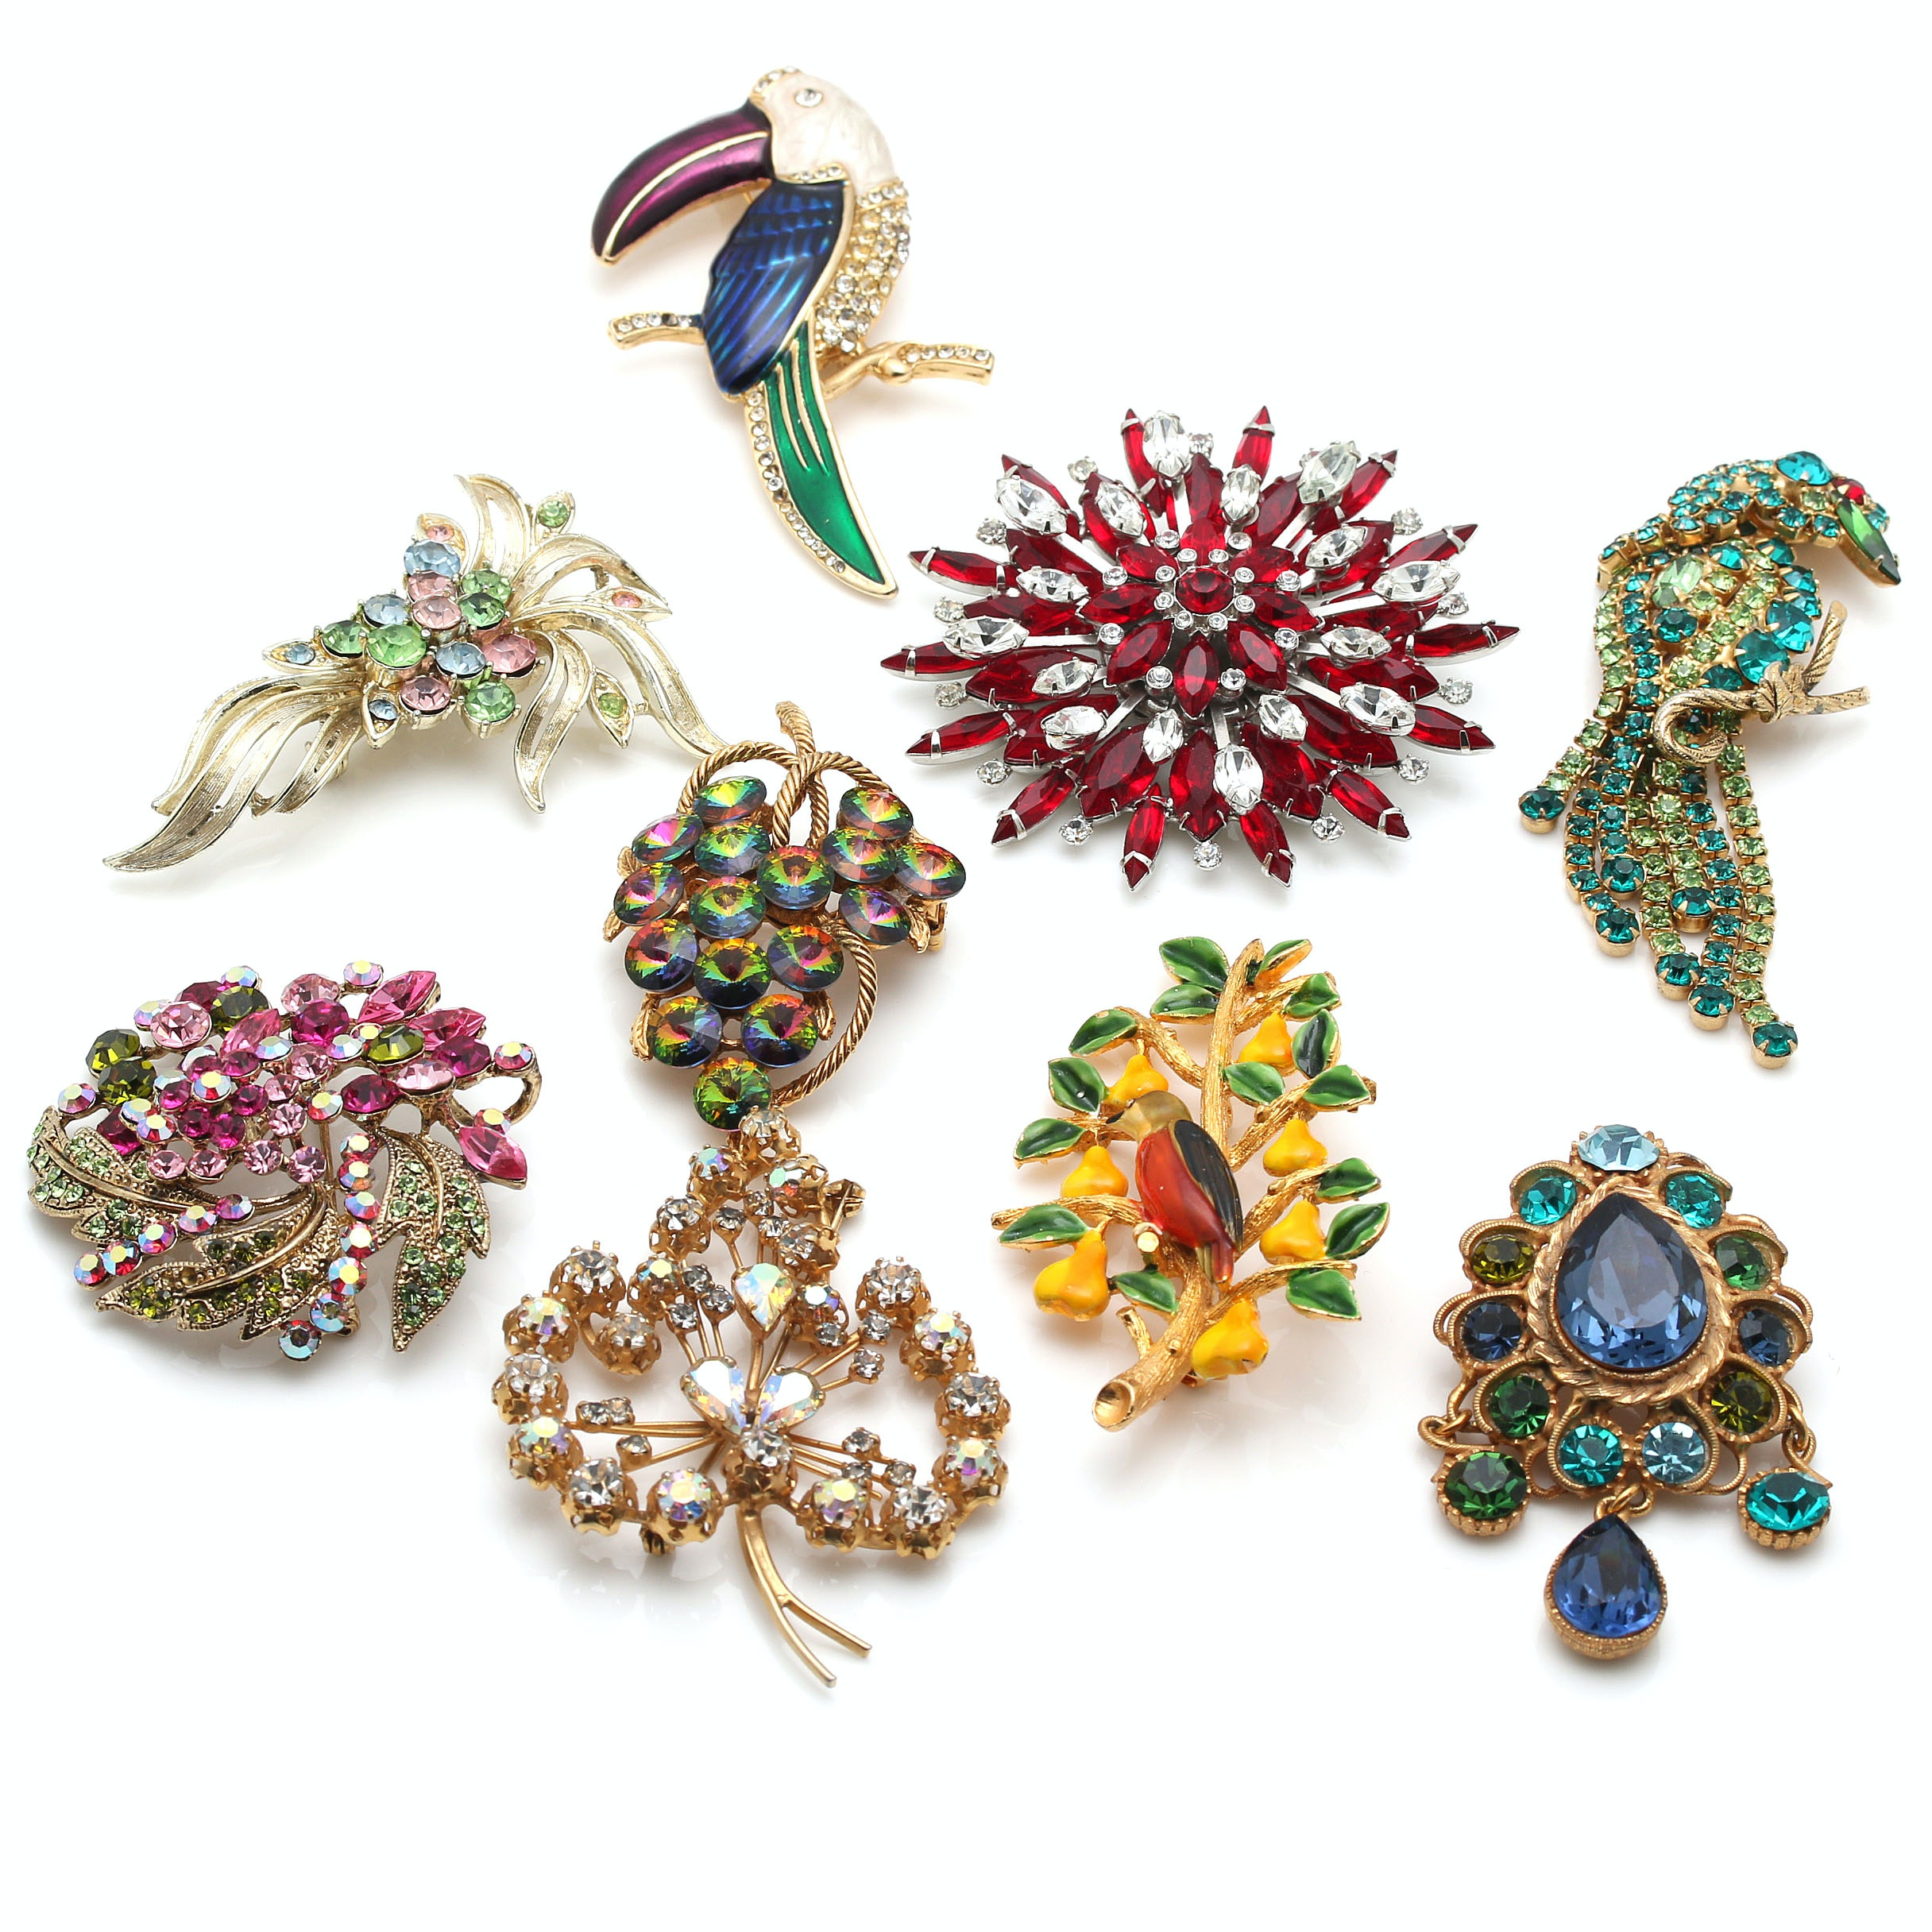 Collection of Vintage Costume Brooches Featuring Coro and Cadoro